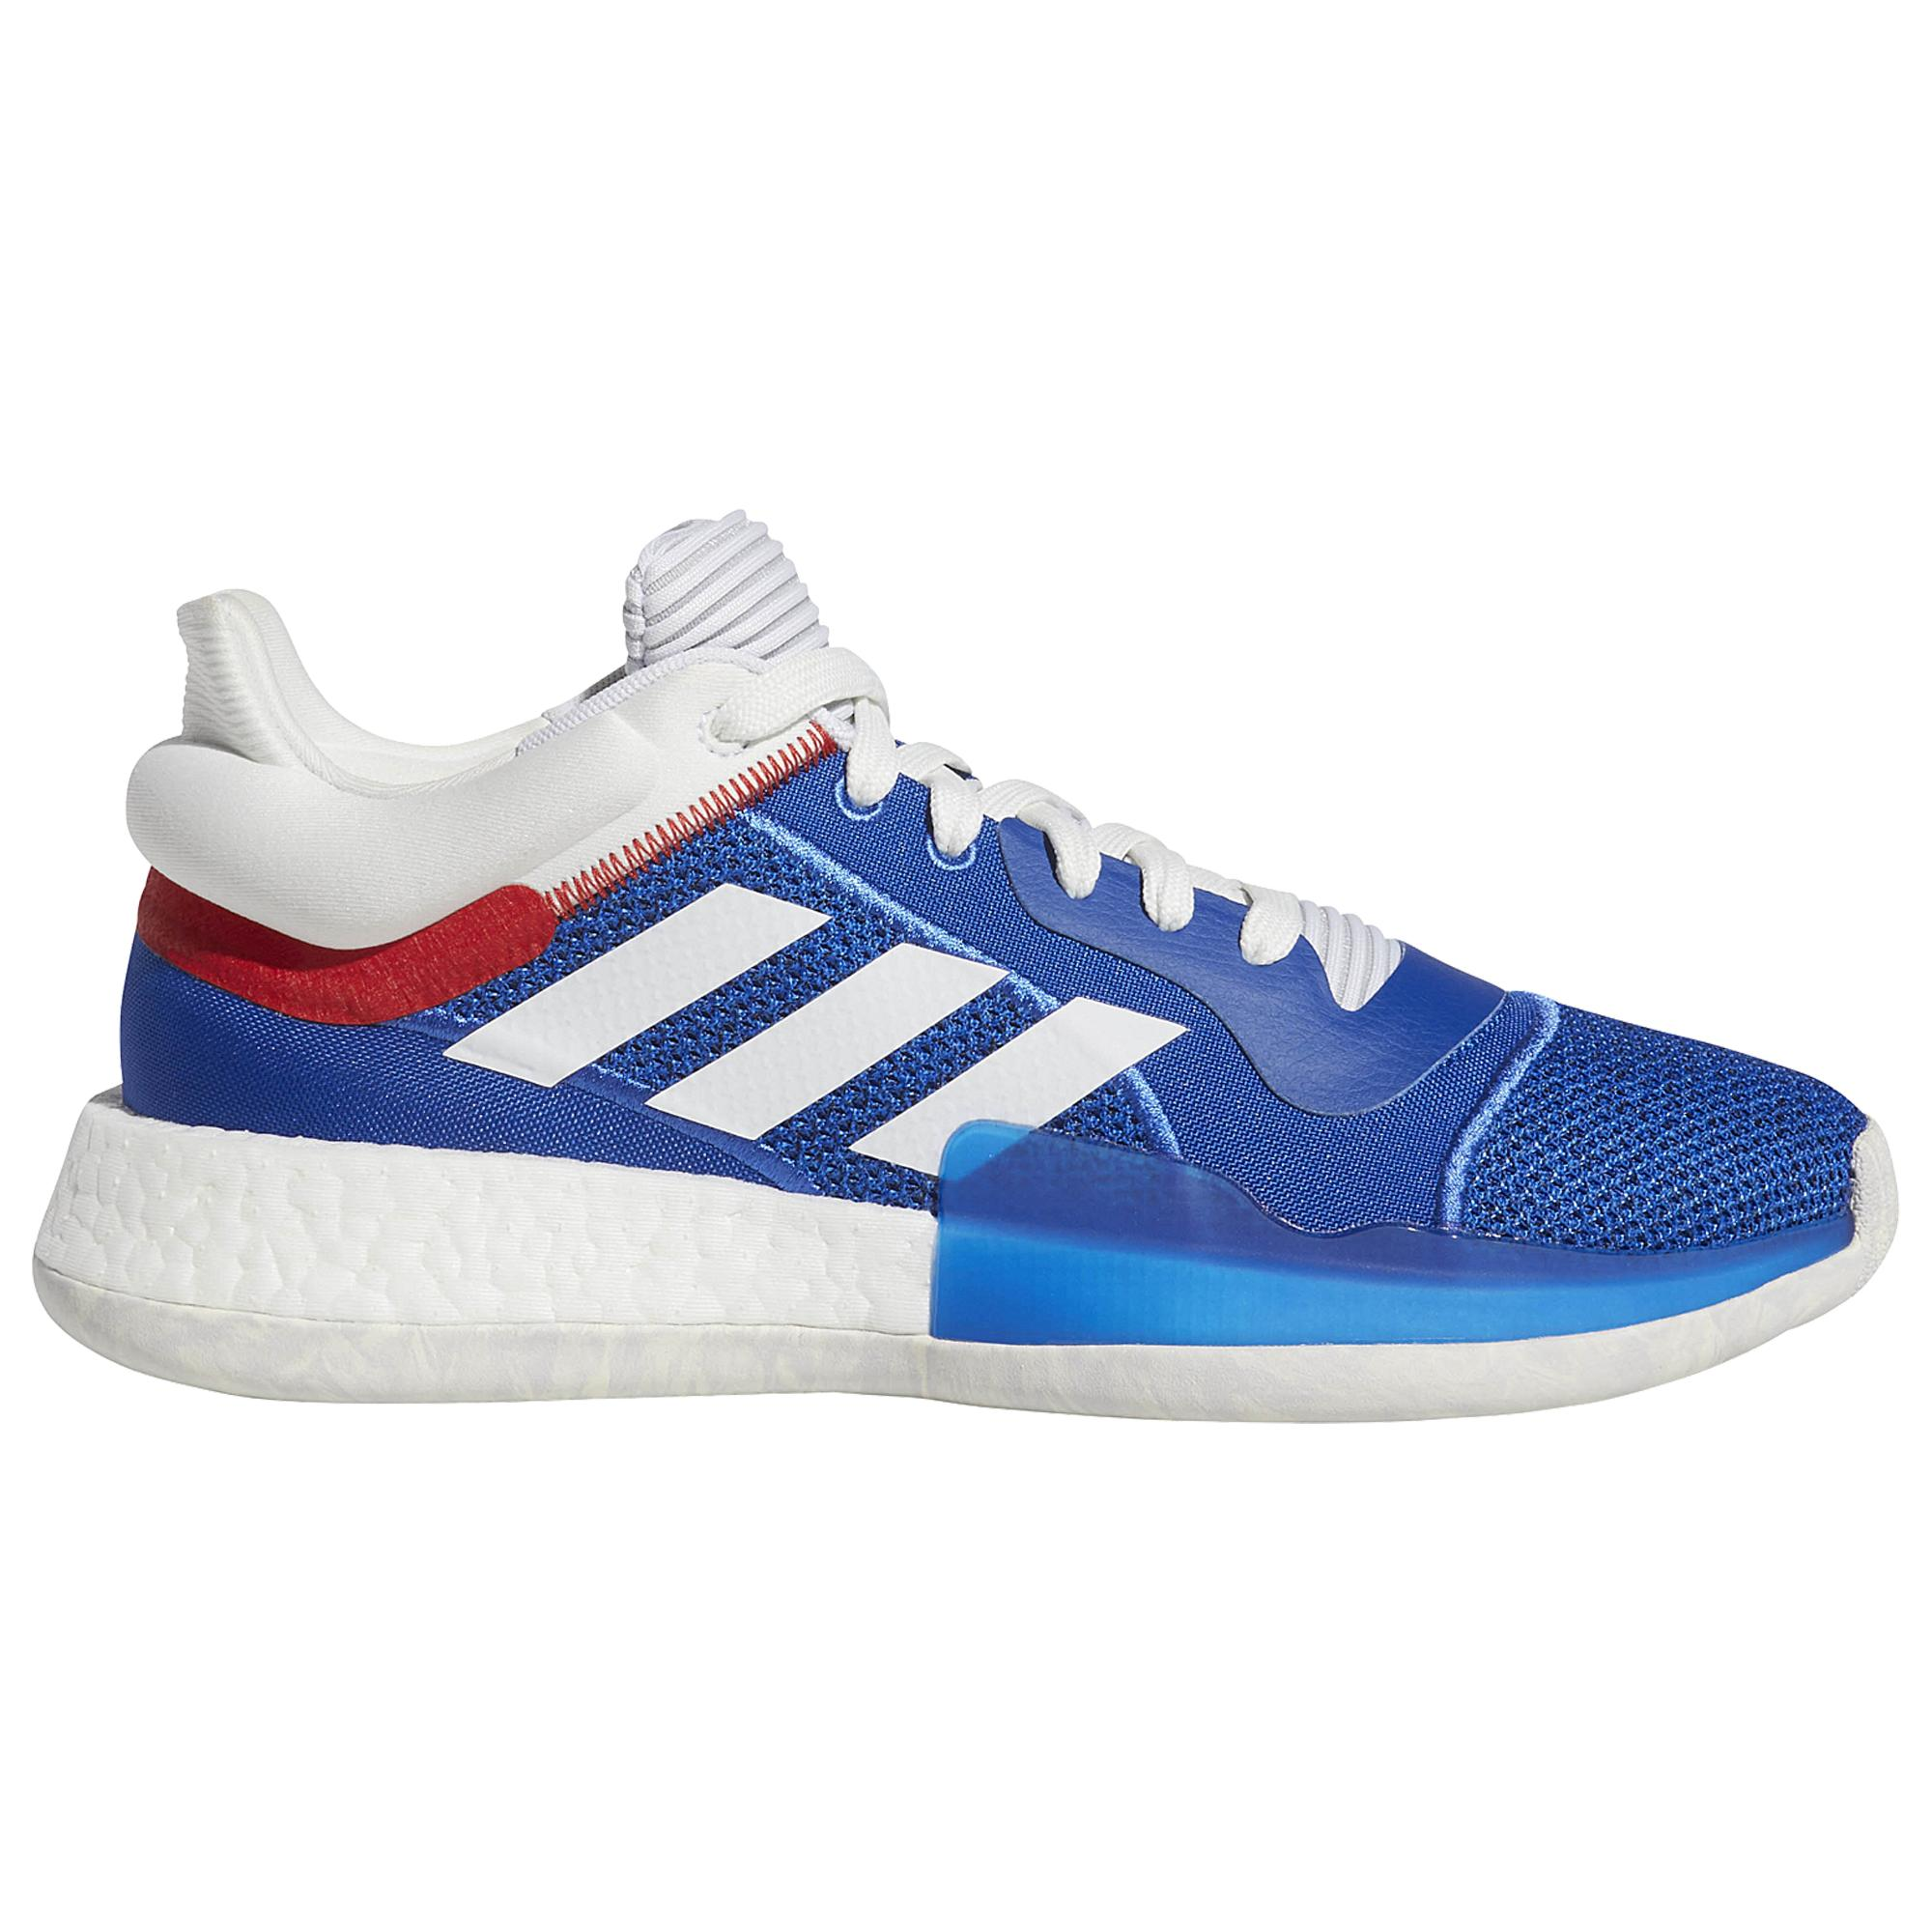 Marquee Boost Low Basketball Shoes